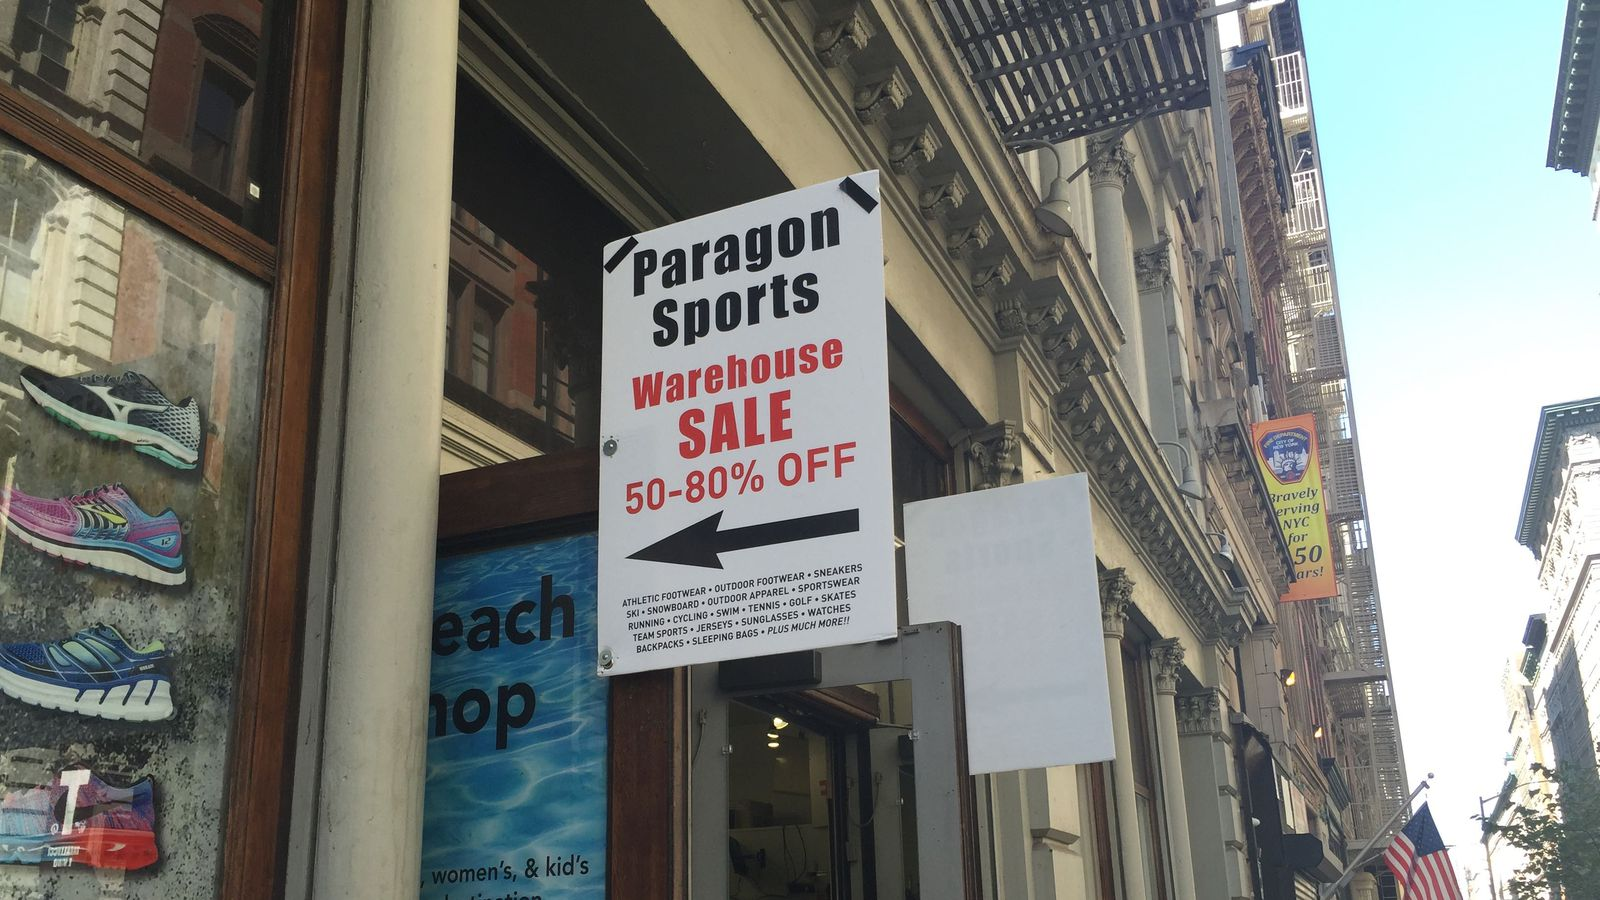 Paragon Sports September 10, Our Warehouse Sale begins 9/11 until 9/22 featuring % off many great products including athletic footwear, sneakers, cycling, tennis, running, performance apparel, ski, snowboard, skates & more!Ratings: 1.